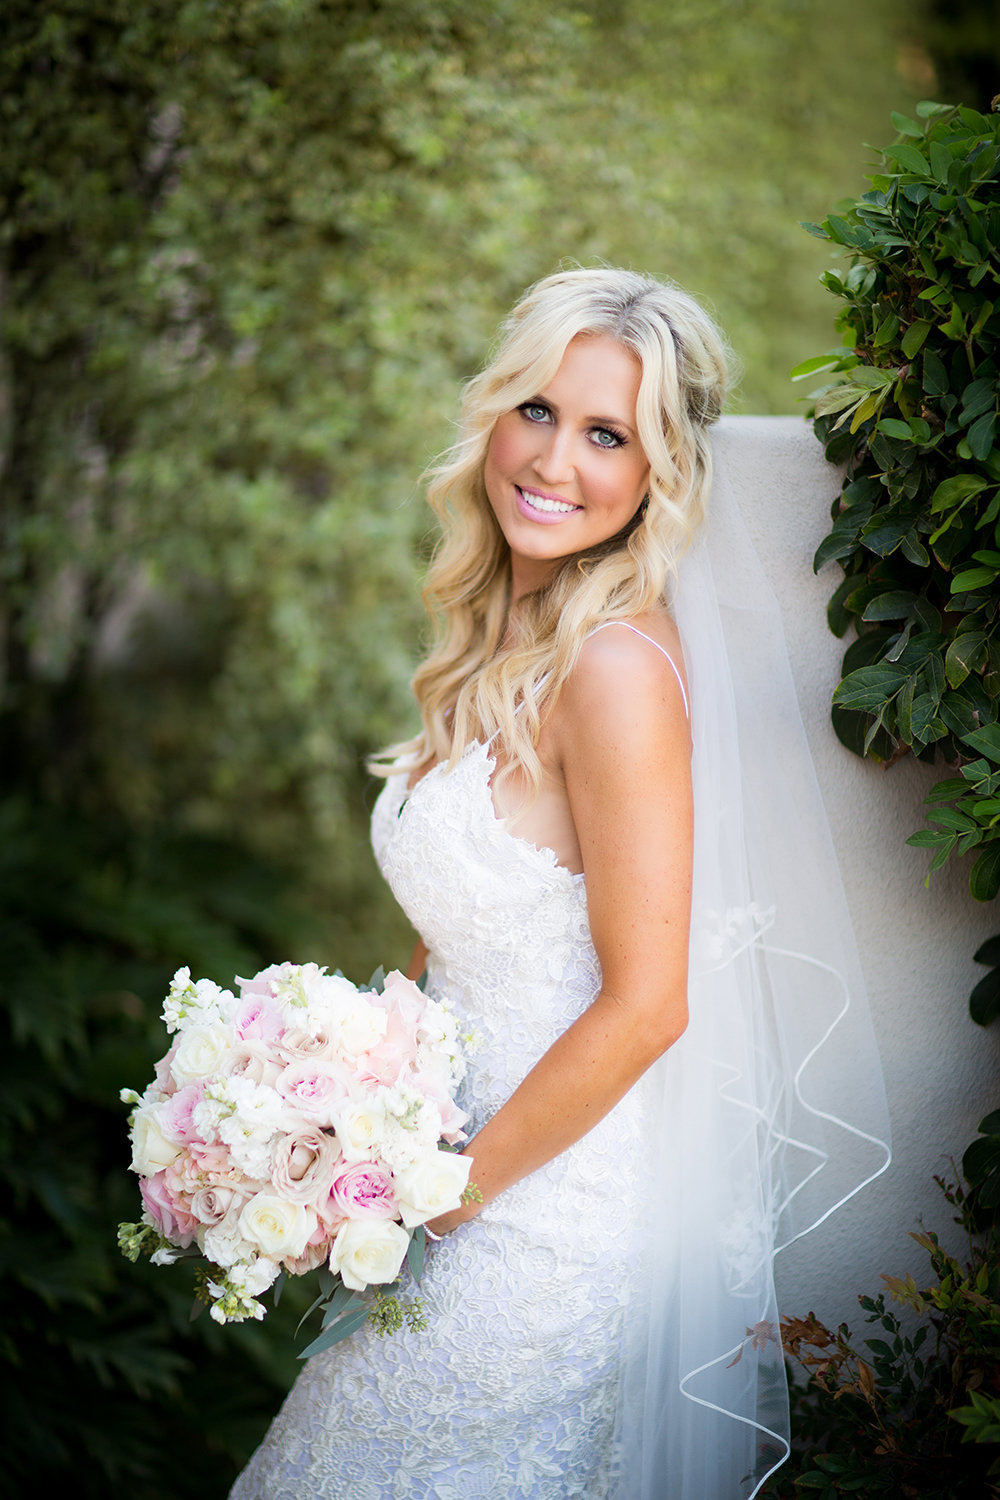 Rancho Bernardo Inn wedding photos beautiful bride photo